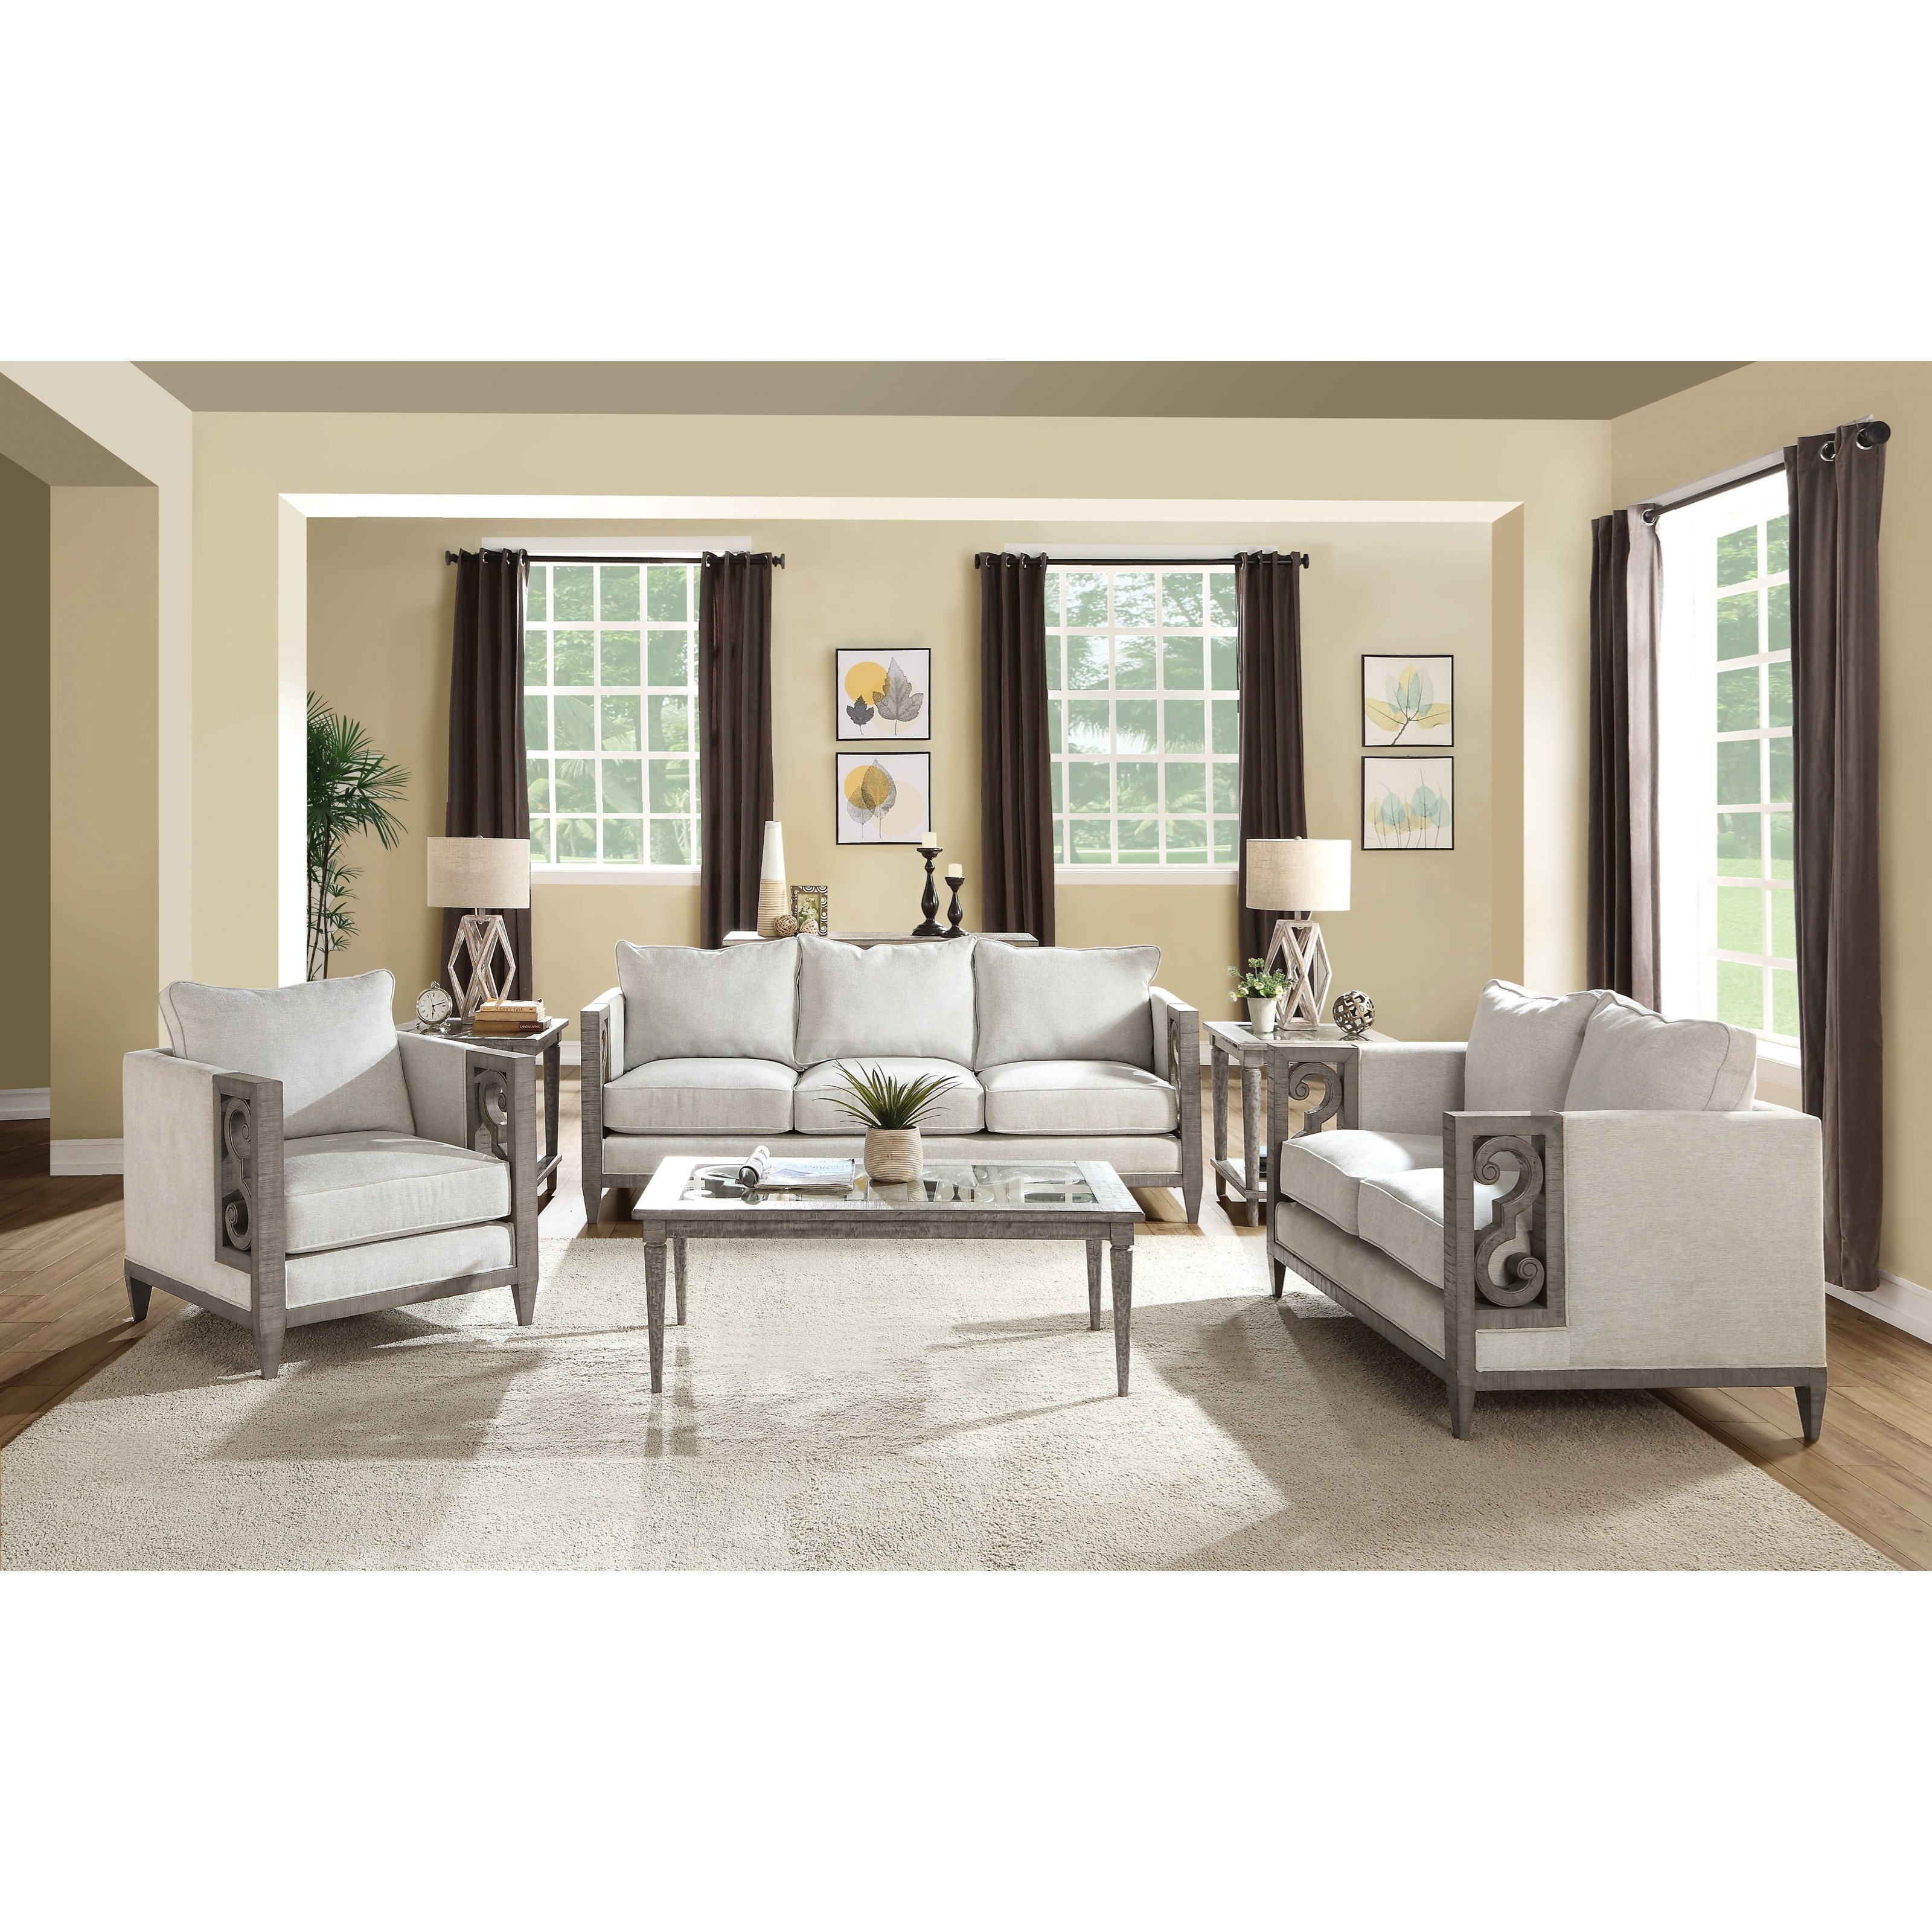 Artesia Living Room Group by Acme Furniture at Carolina Direct